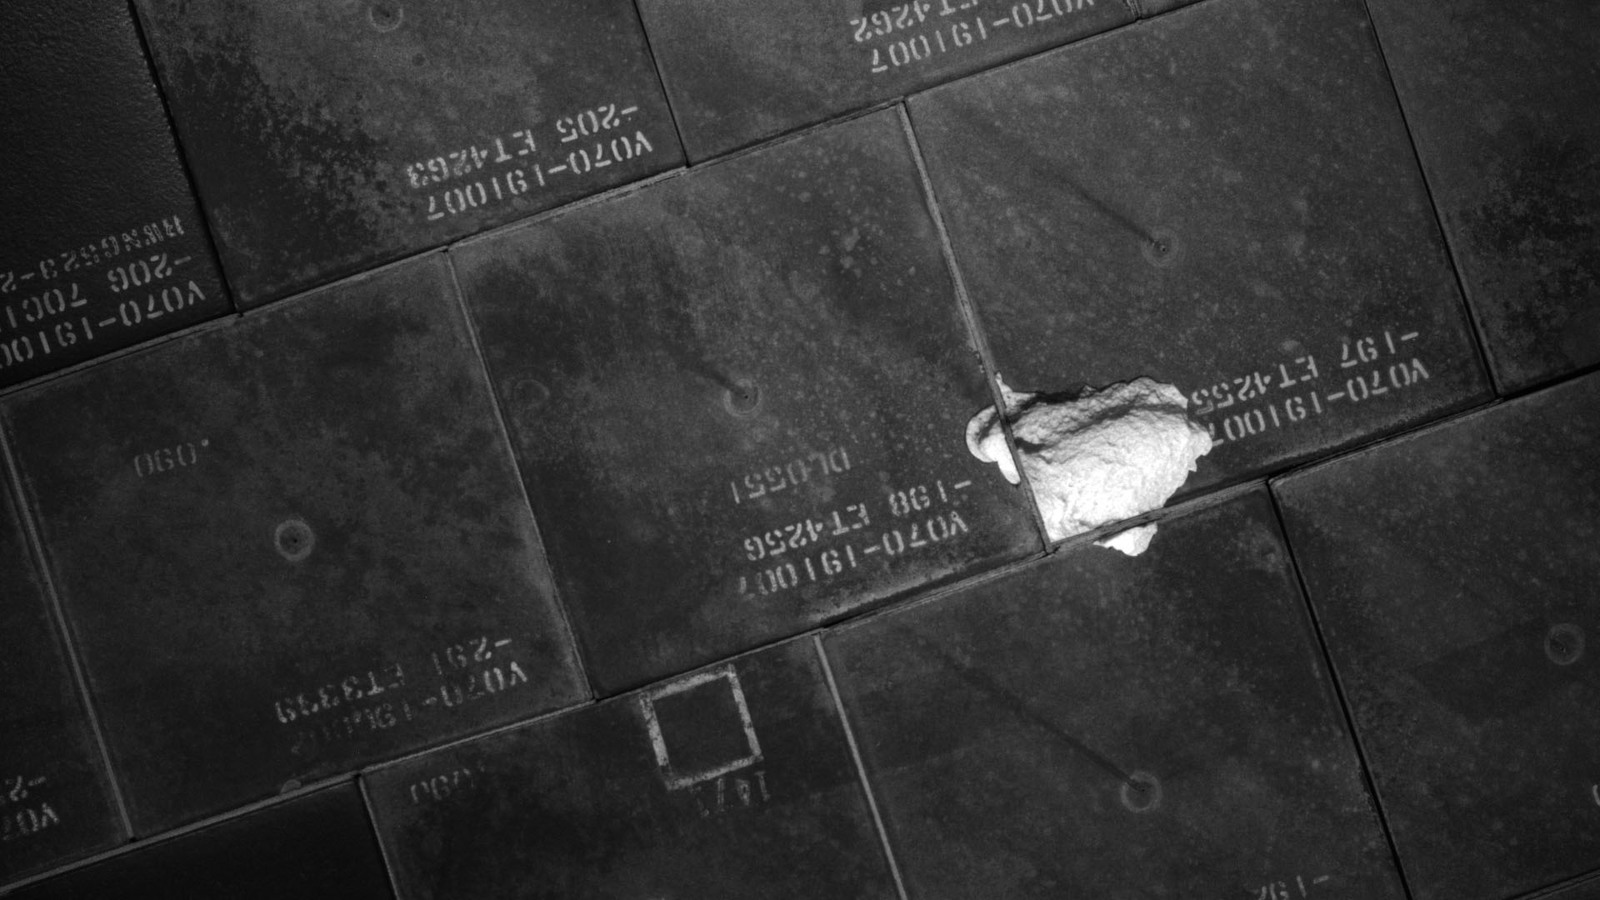 S134E007923 - STS-134 - STS-134 IDC Focused Inspection of TPS Tiles